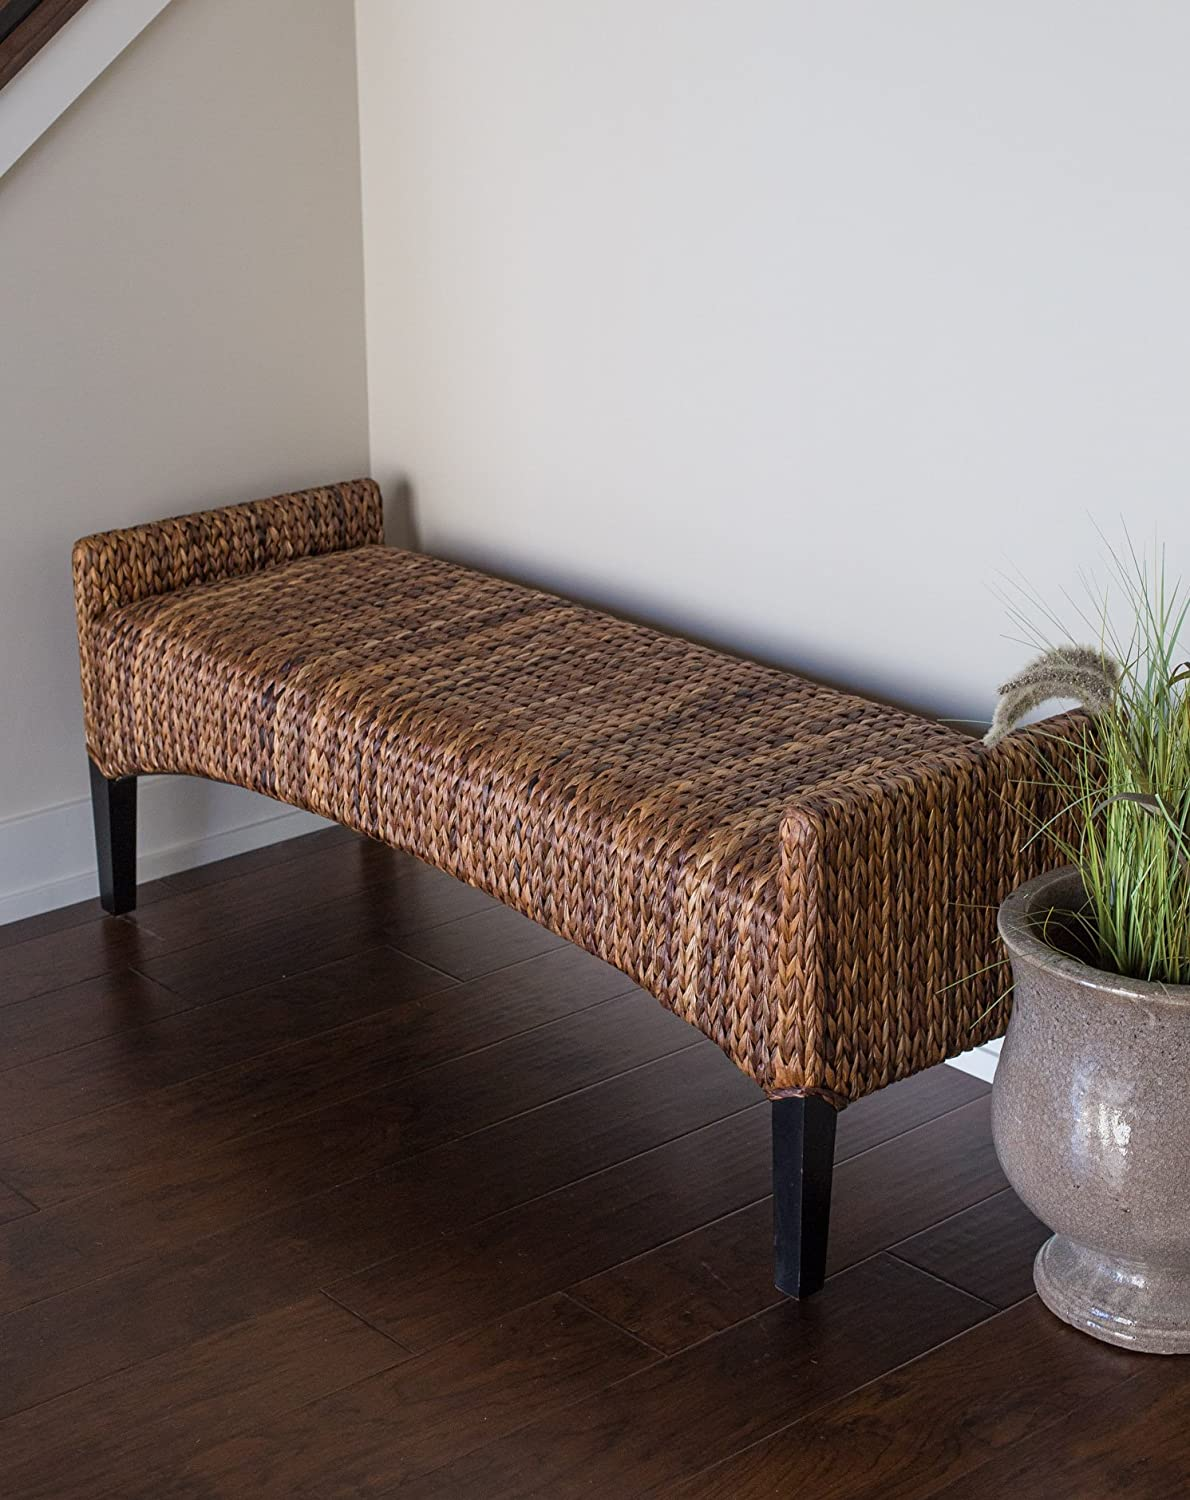 Home Furniture Woven Seagrass Bench